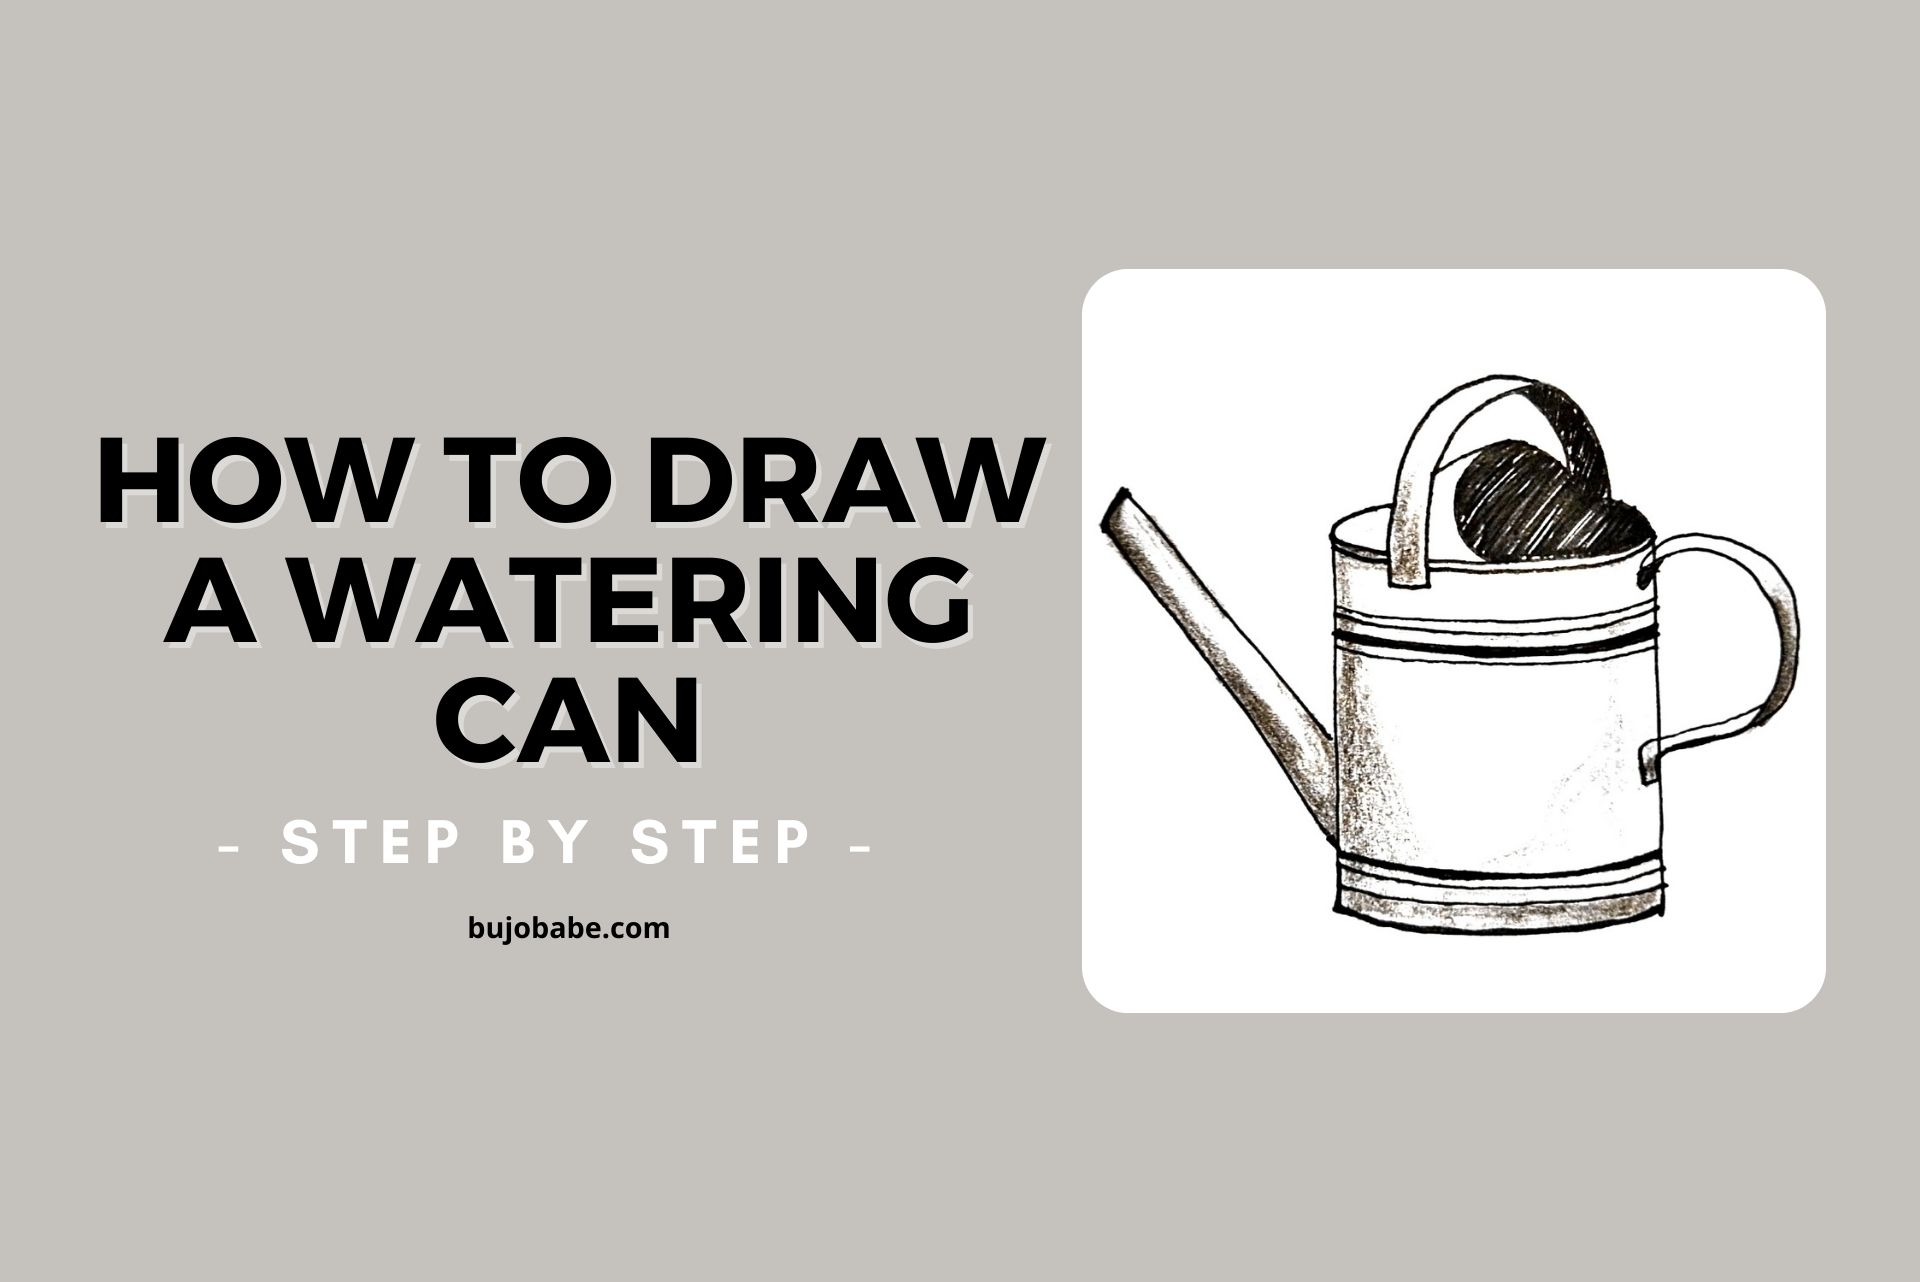 how to draw a watering can